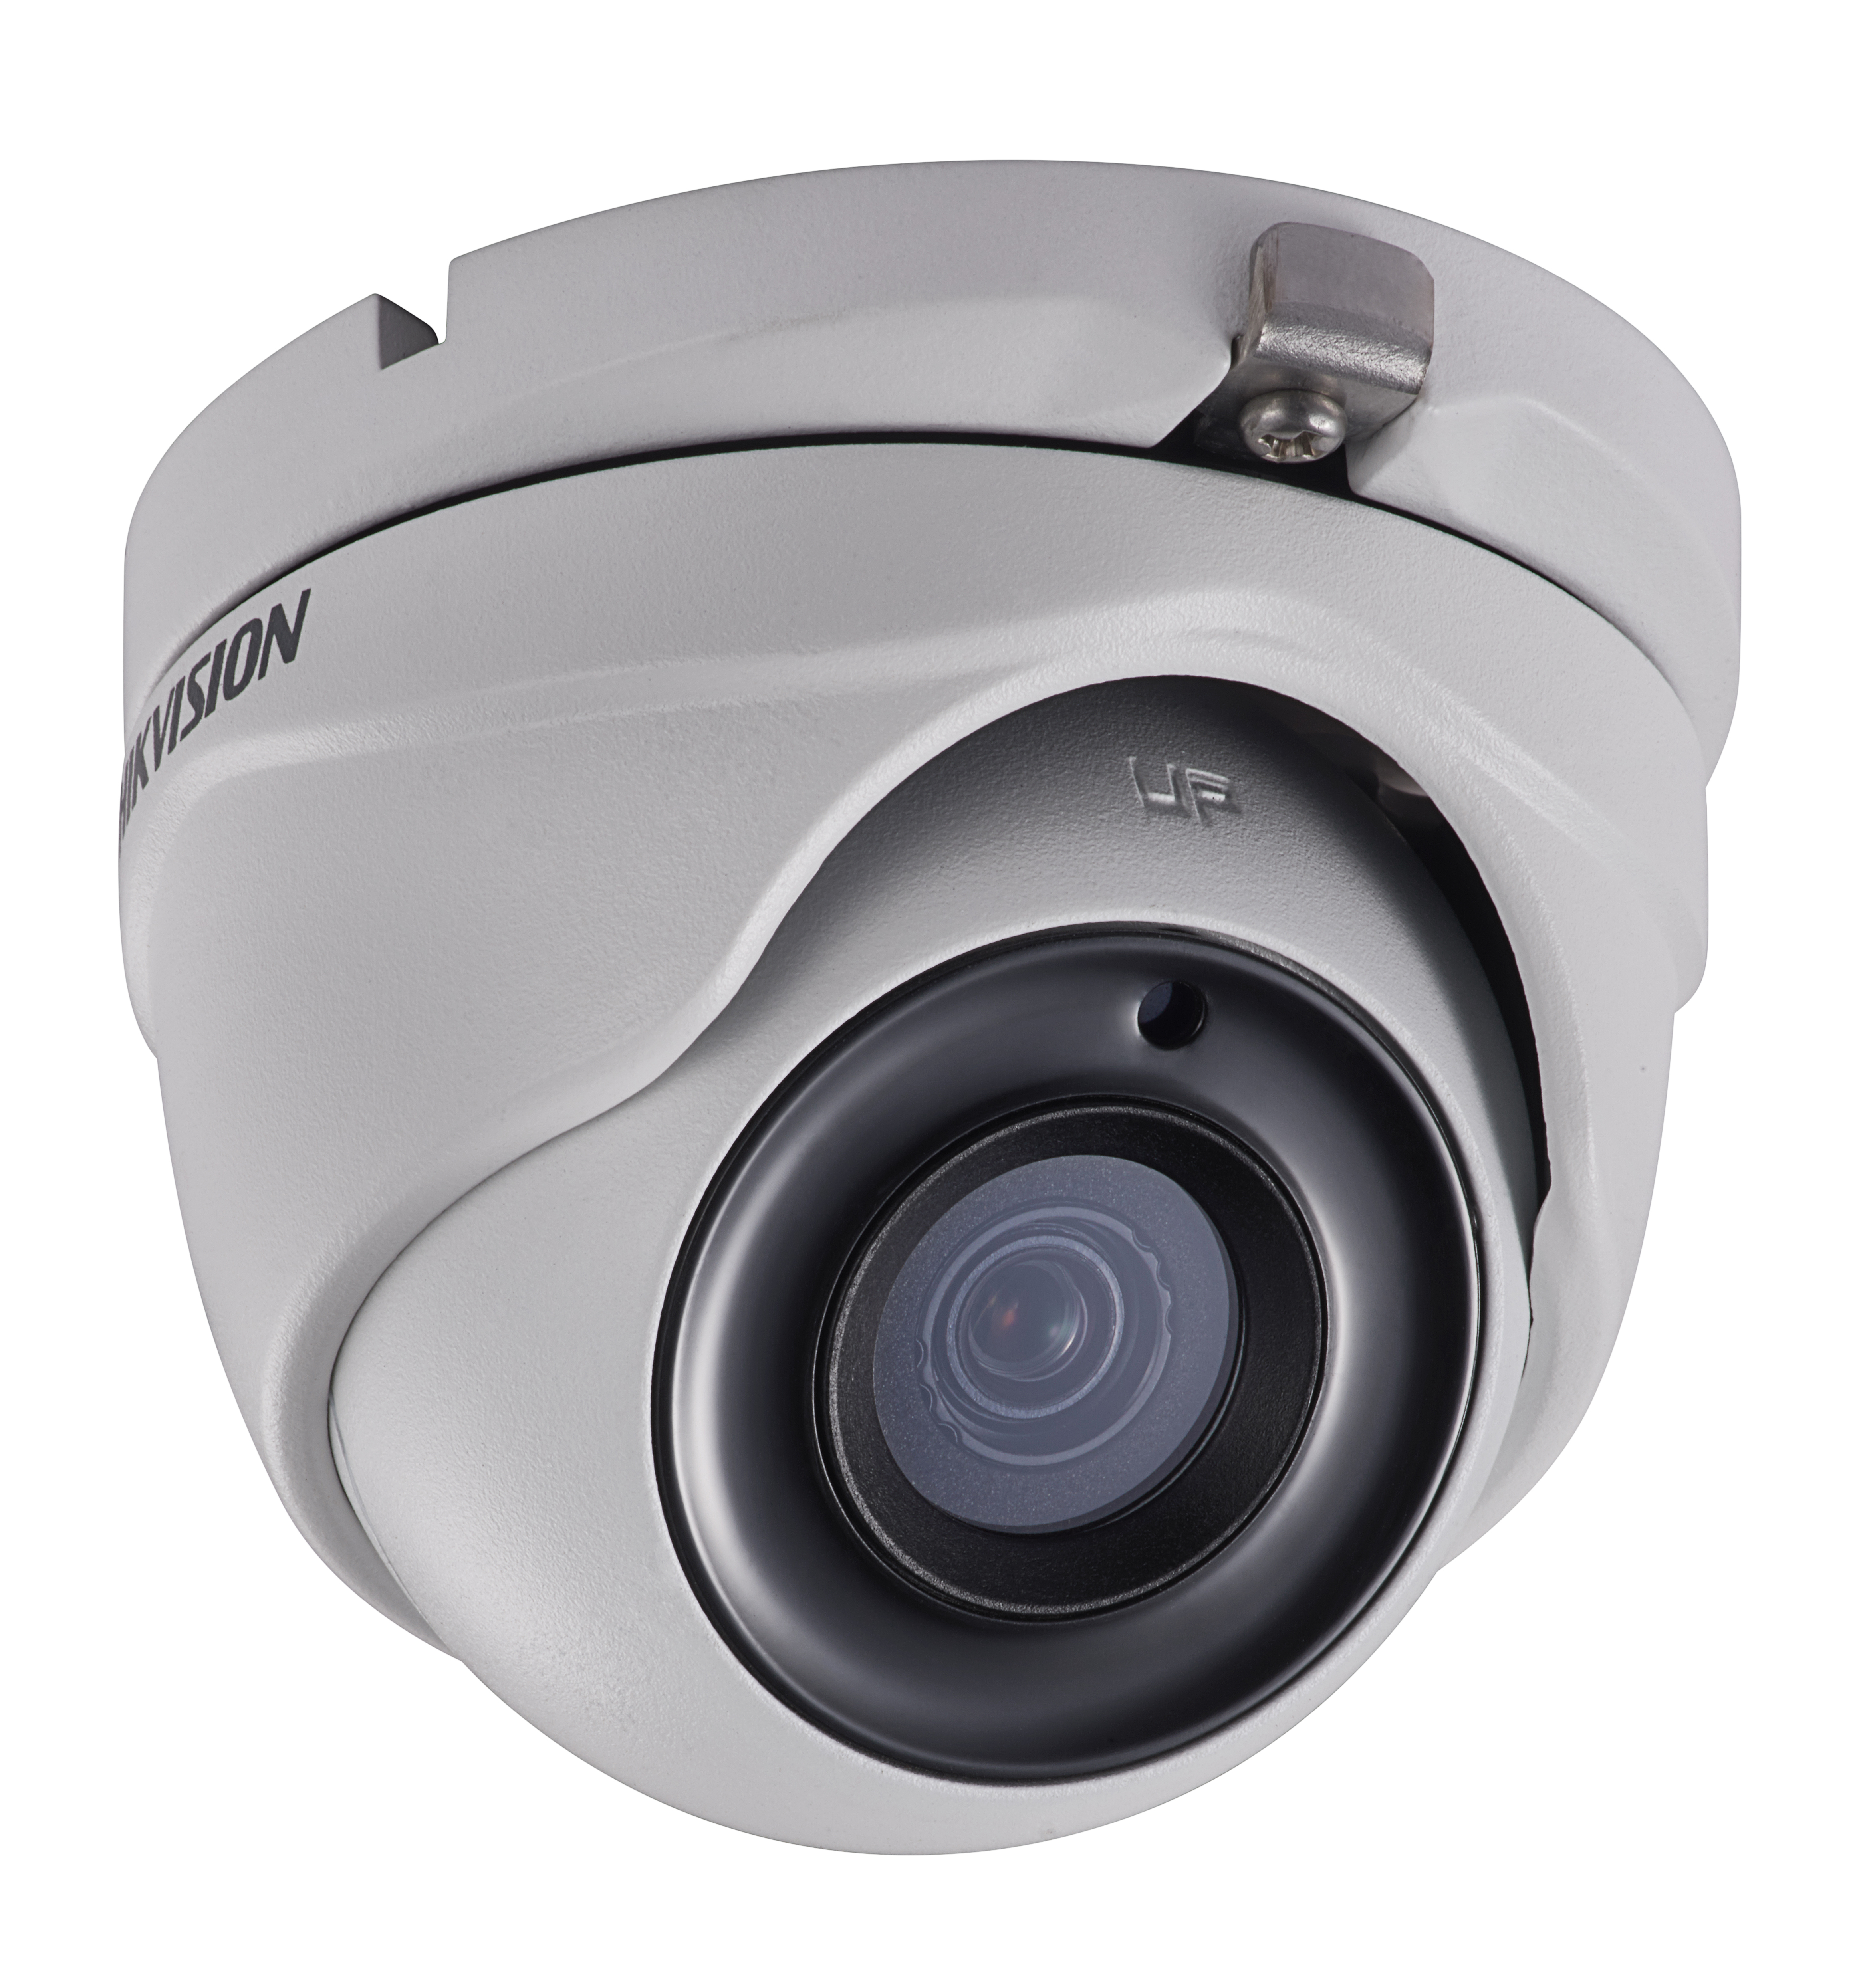 DS-2CE56H0T-ITMF(2.8mm) 5MP Turbo HD Value Fixed EXIR Turret